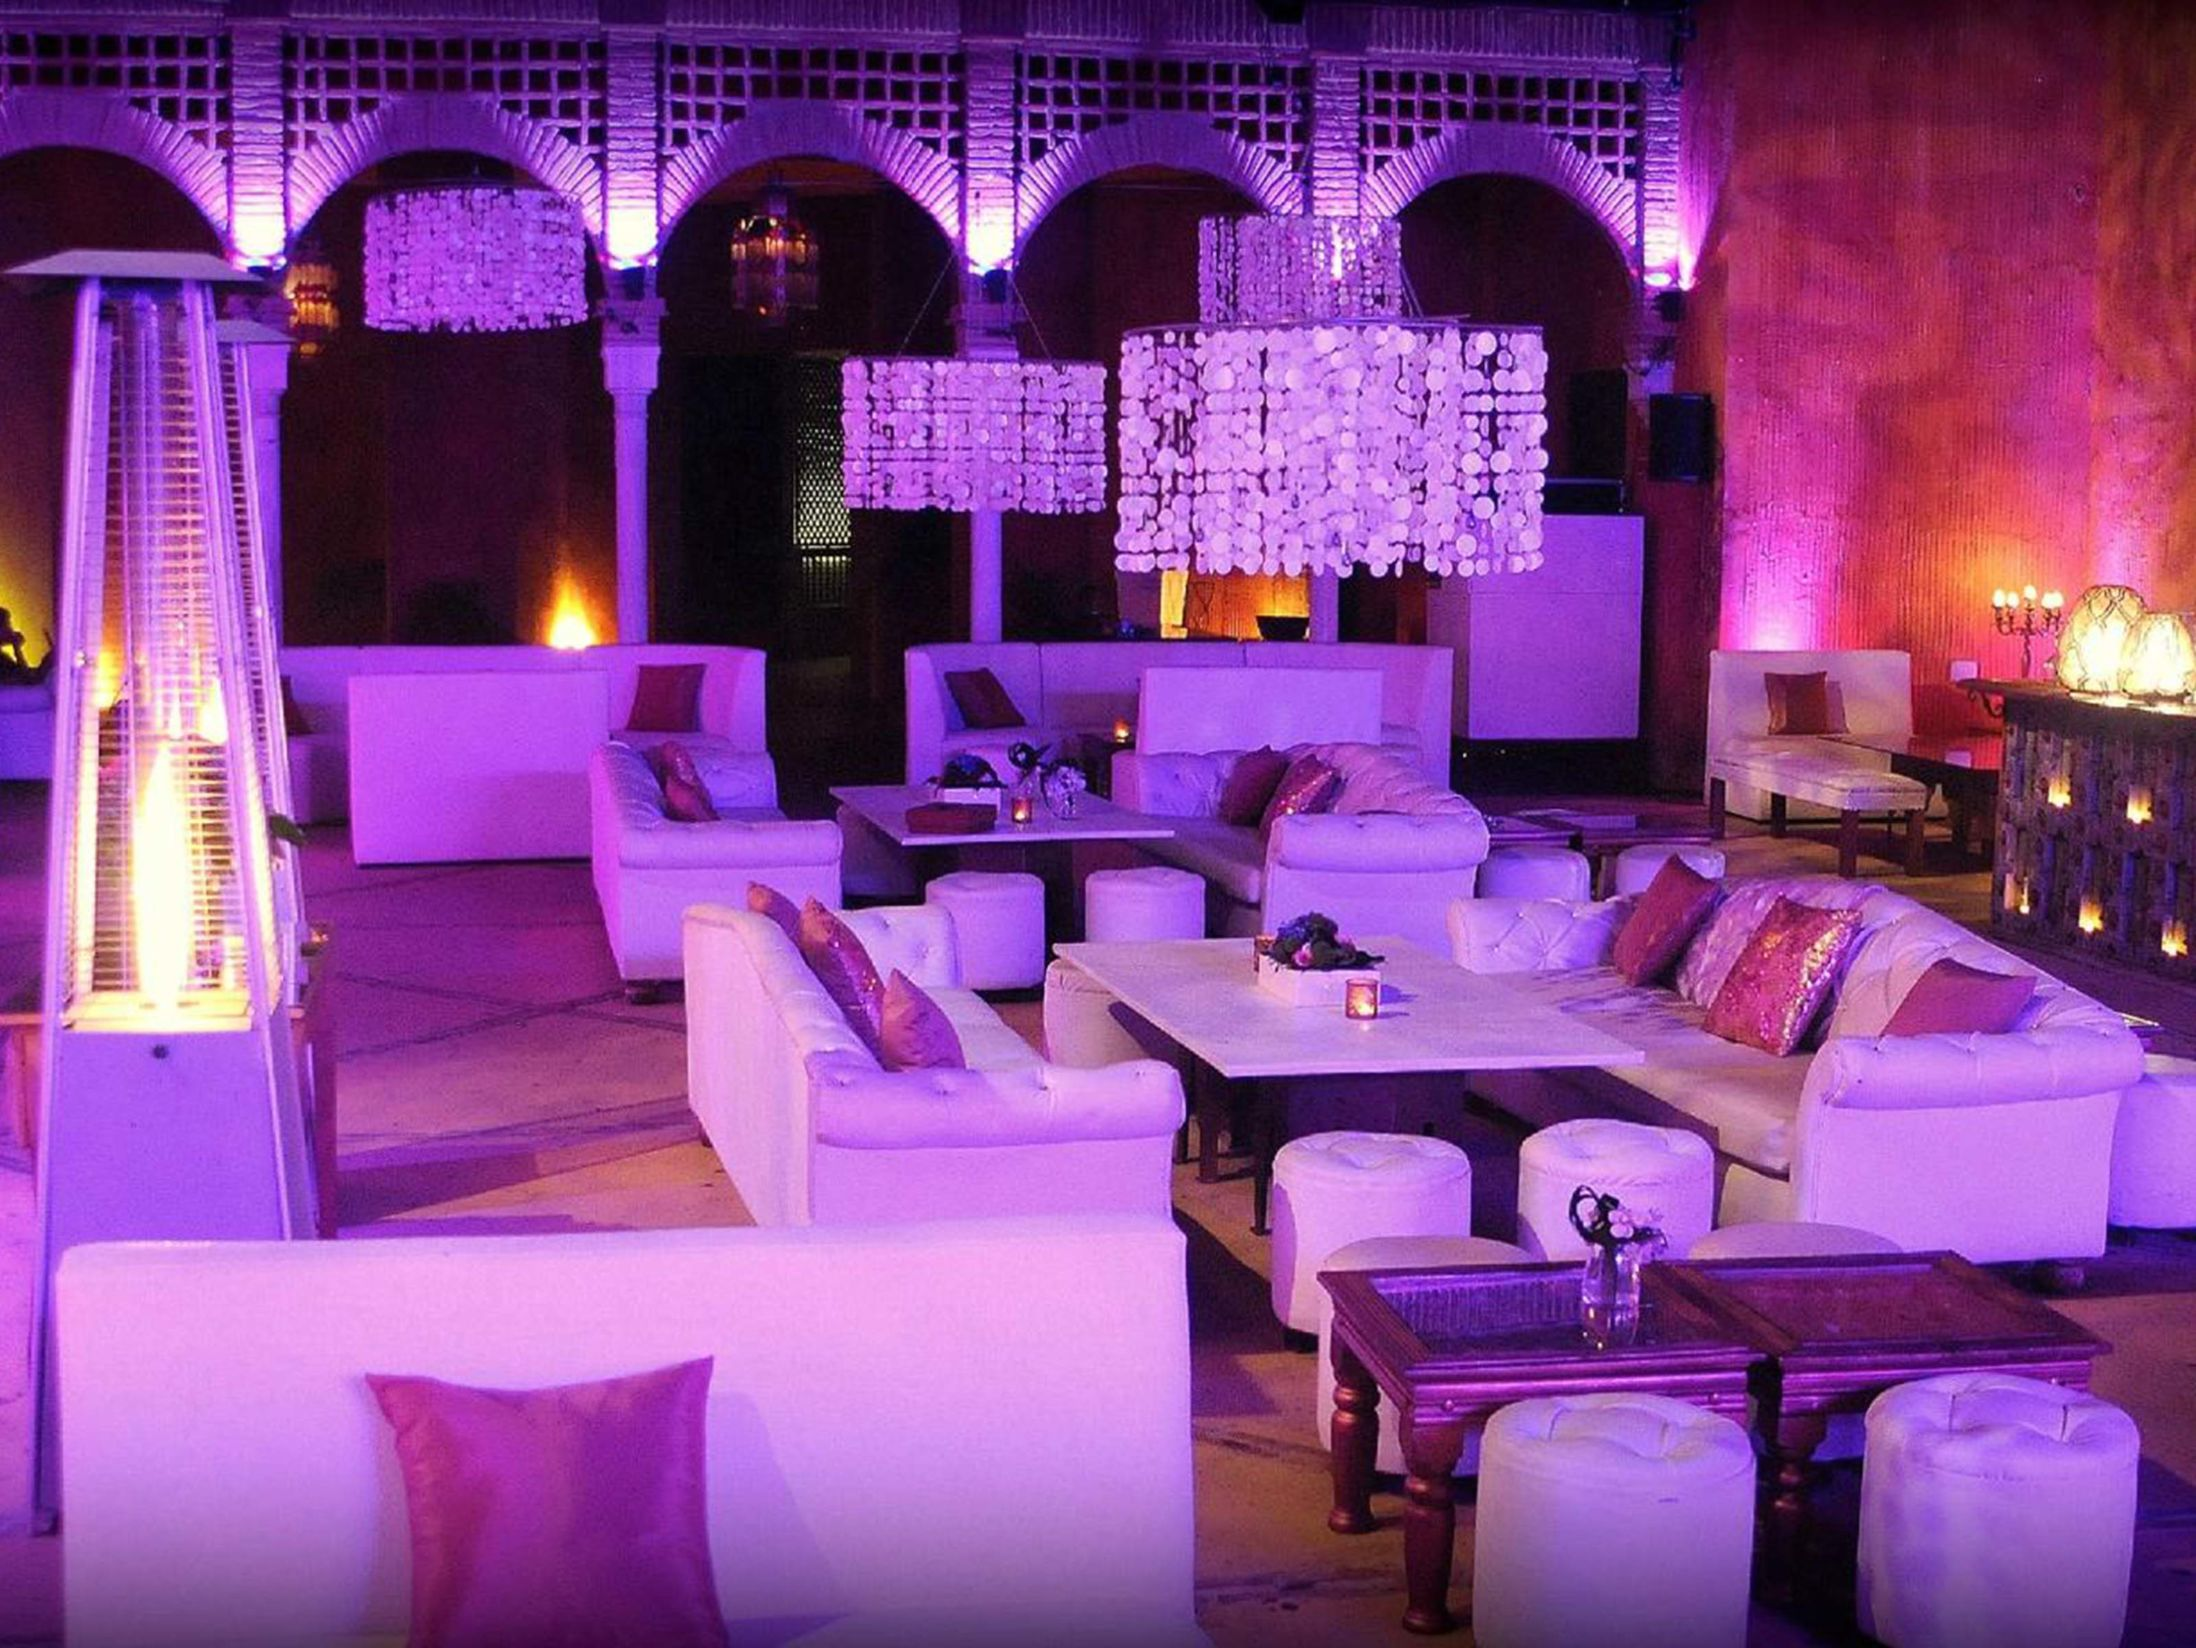 Best Clubs in Marbella - Olivia Valere